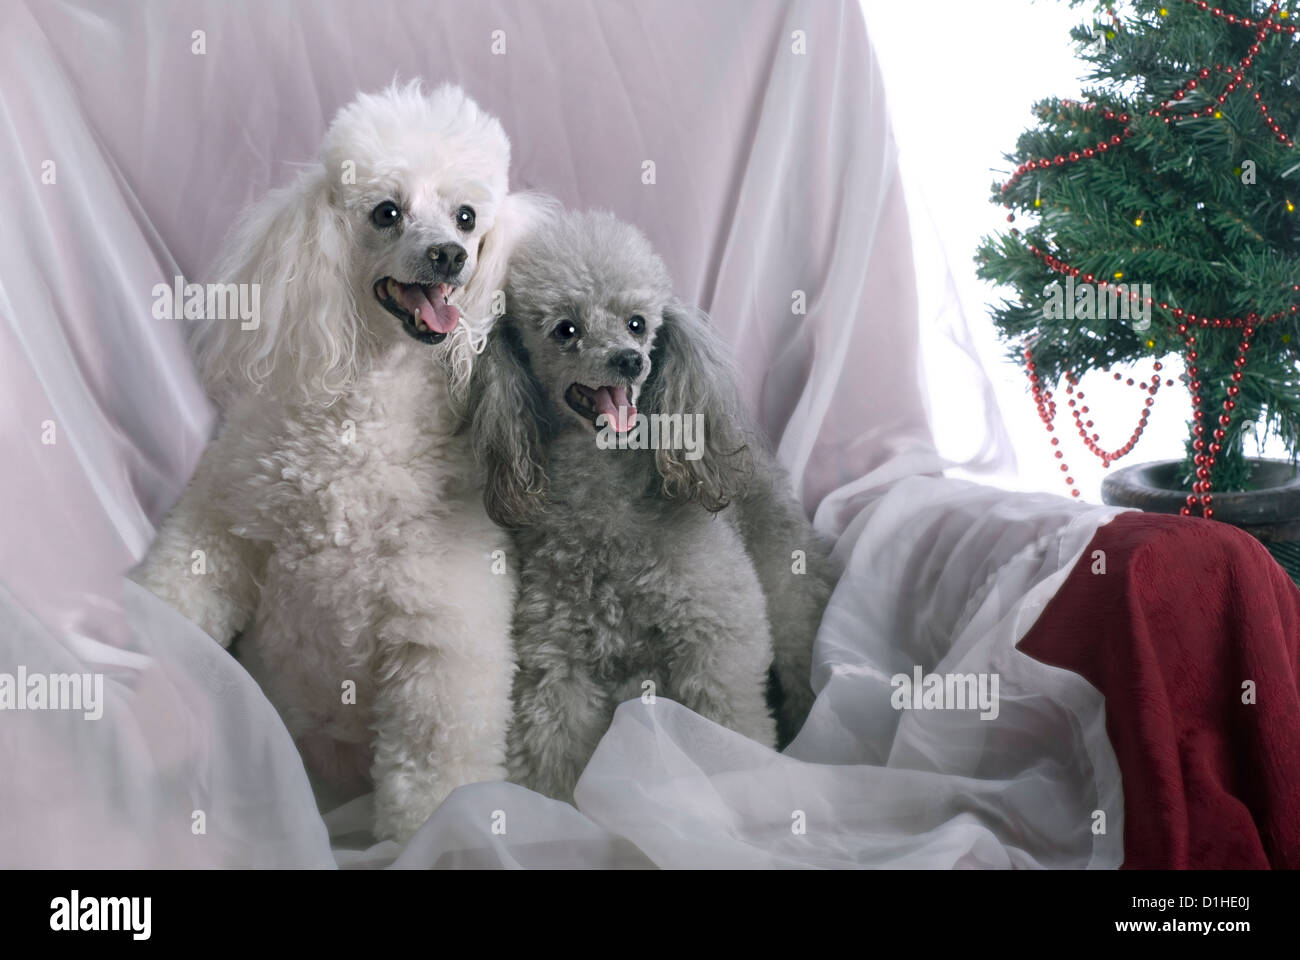 Horizontal image of a white poodle and a silver poodle in a high key studio setting with a Christmas theme. - Stock Image